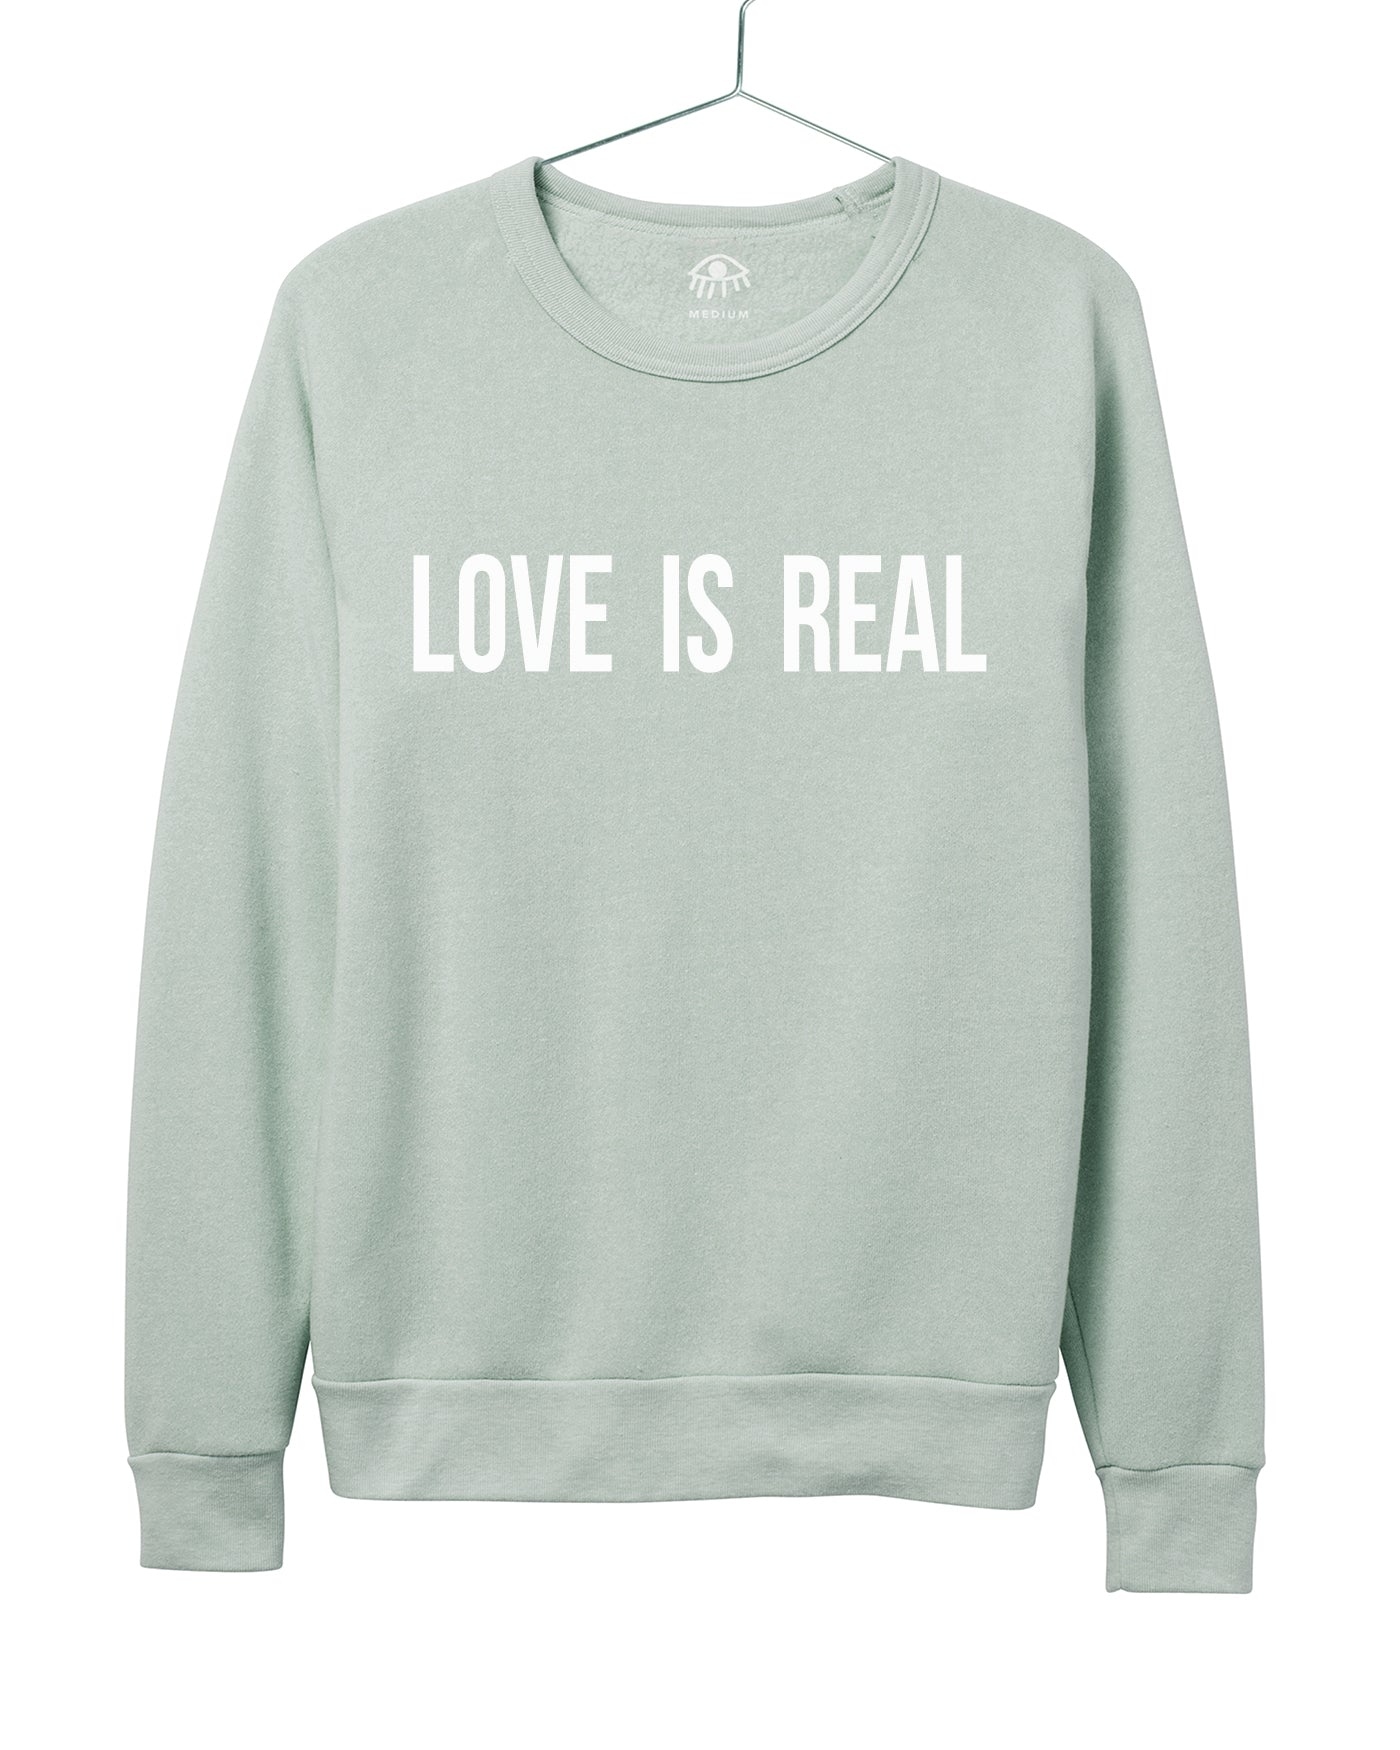 Love is real Women's Crewneck